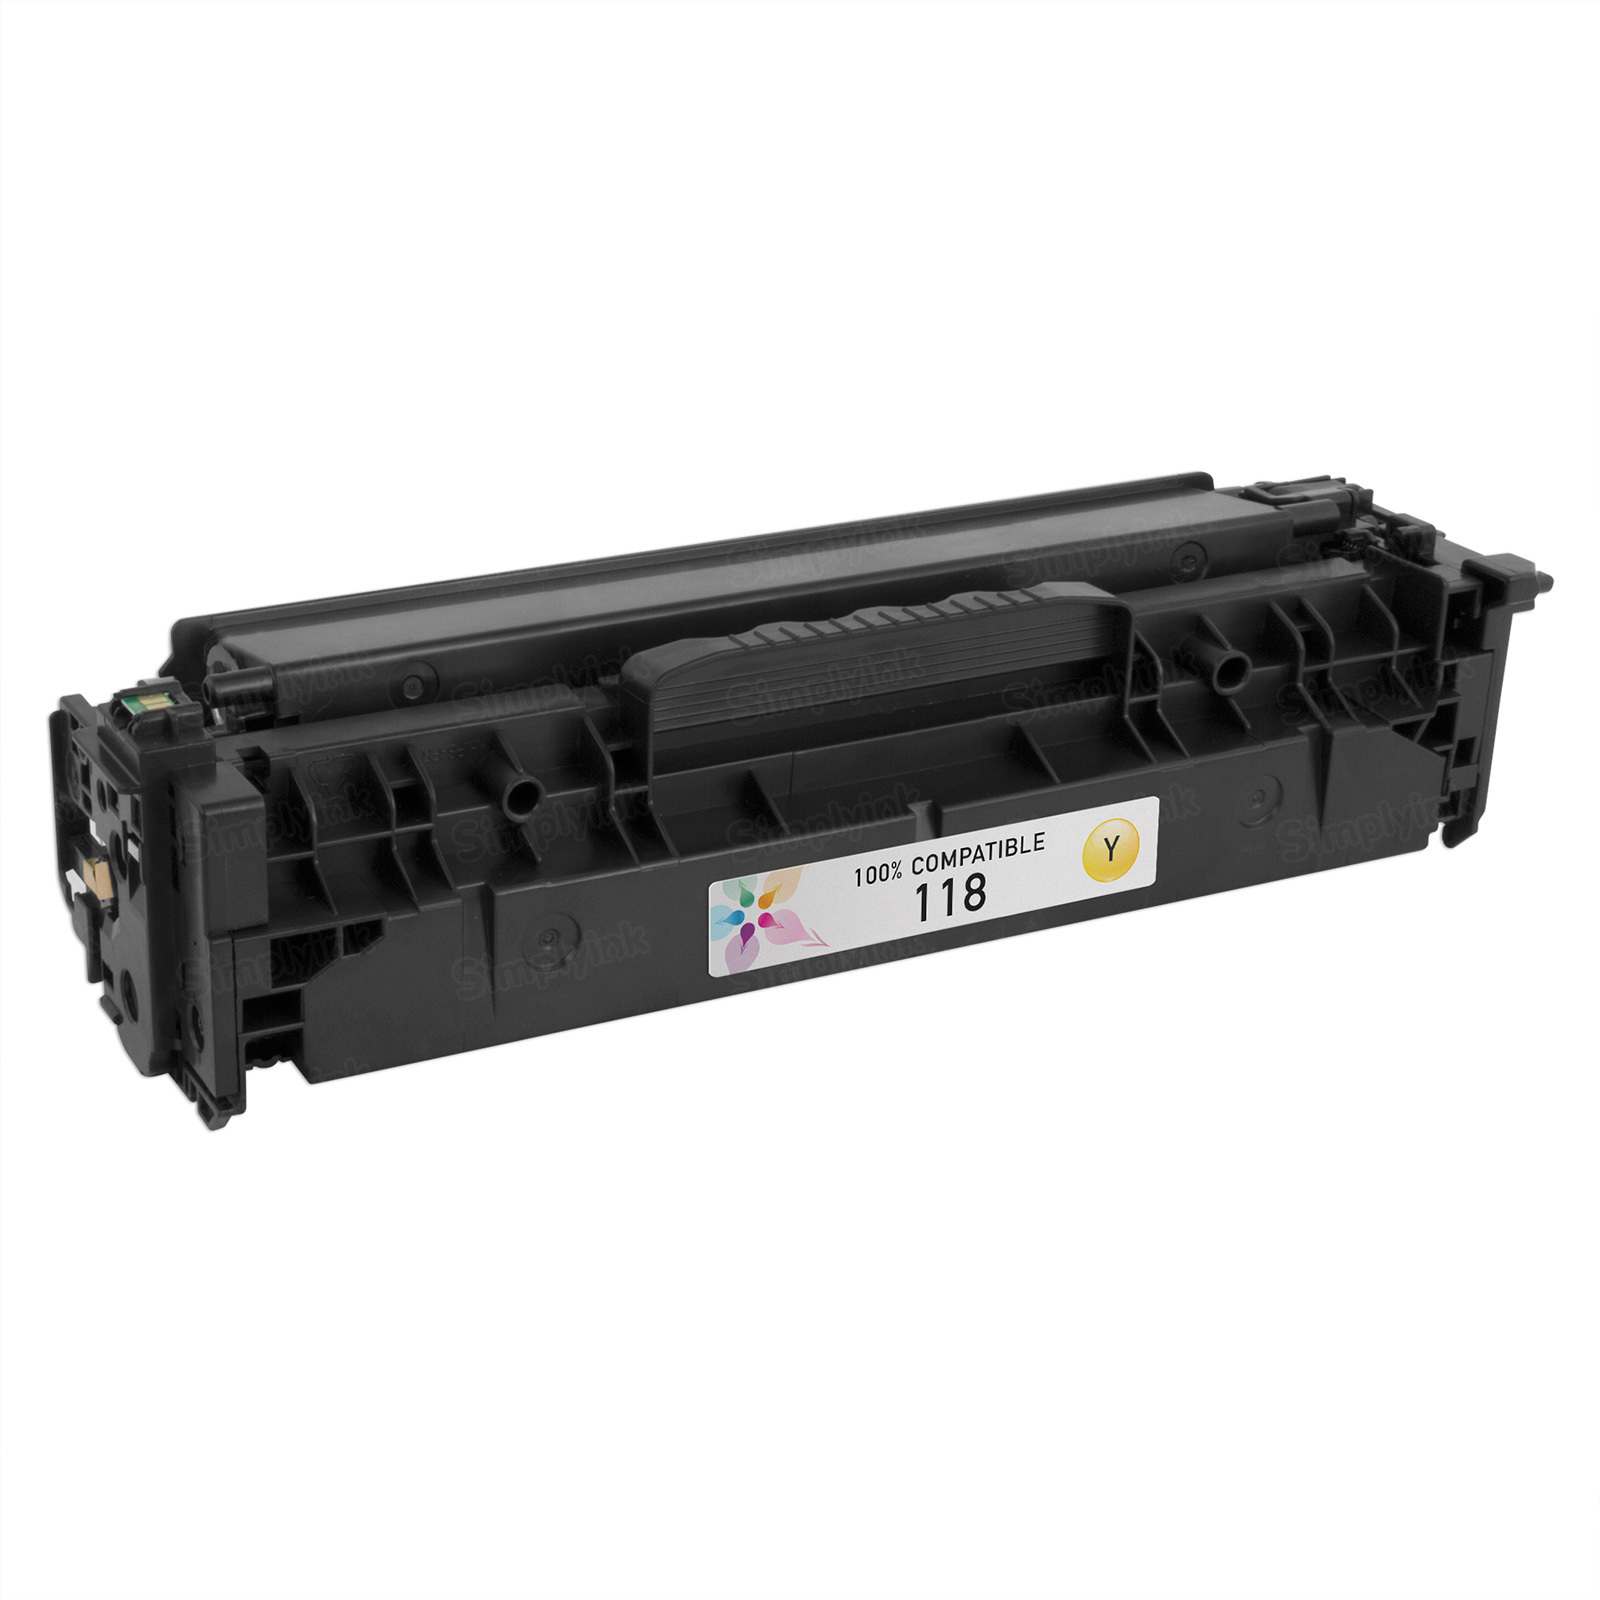 Canon 118 Yellow Toner Cartridge, Compatible